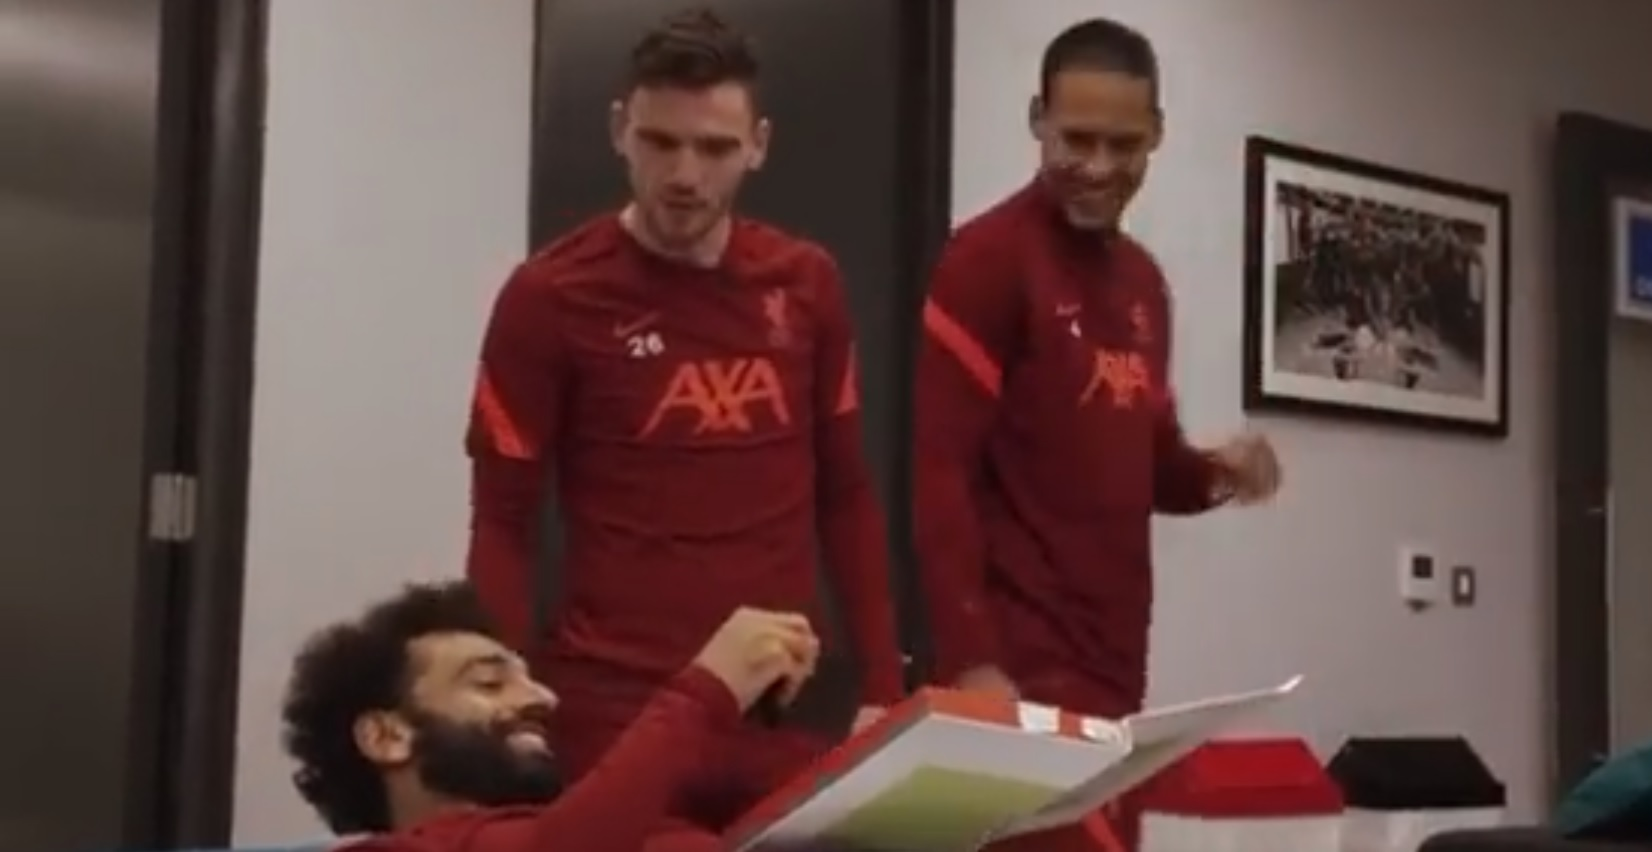 Liverpool fan notices Mo Salah's reaction has been cut from Reds' YouTube FIFA ratings reveal